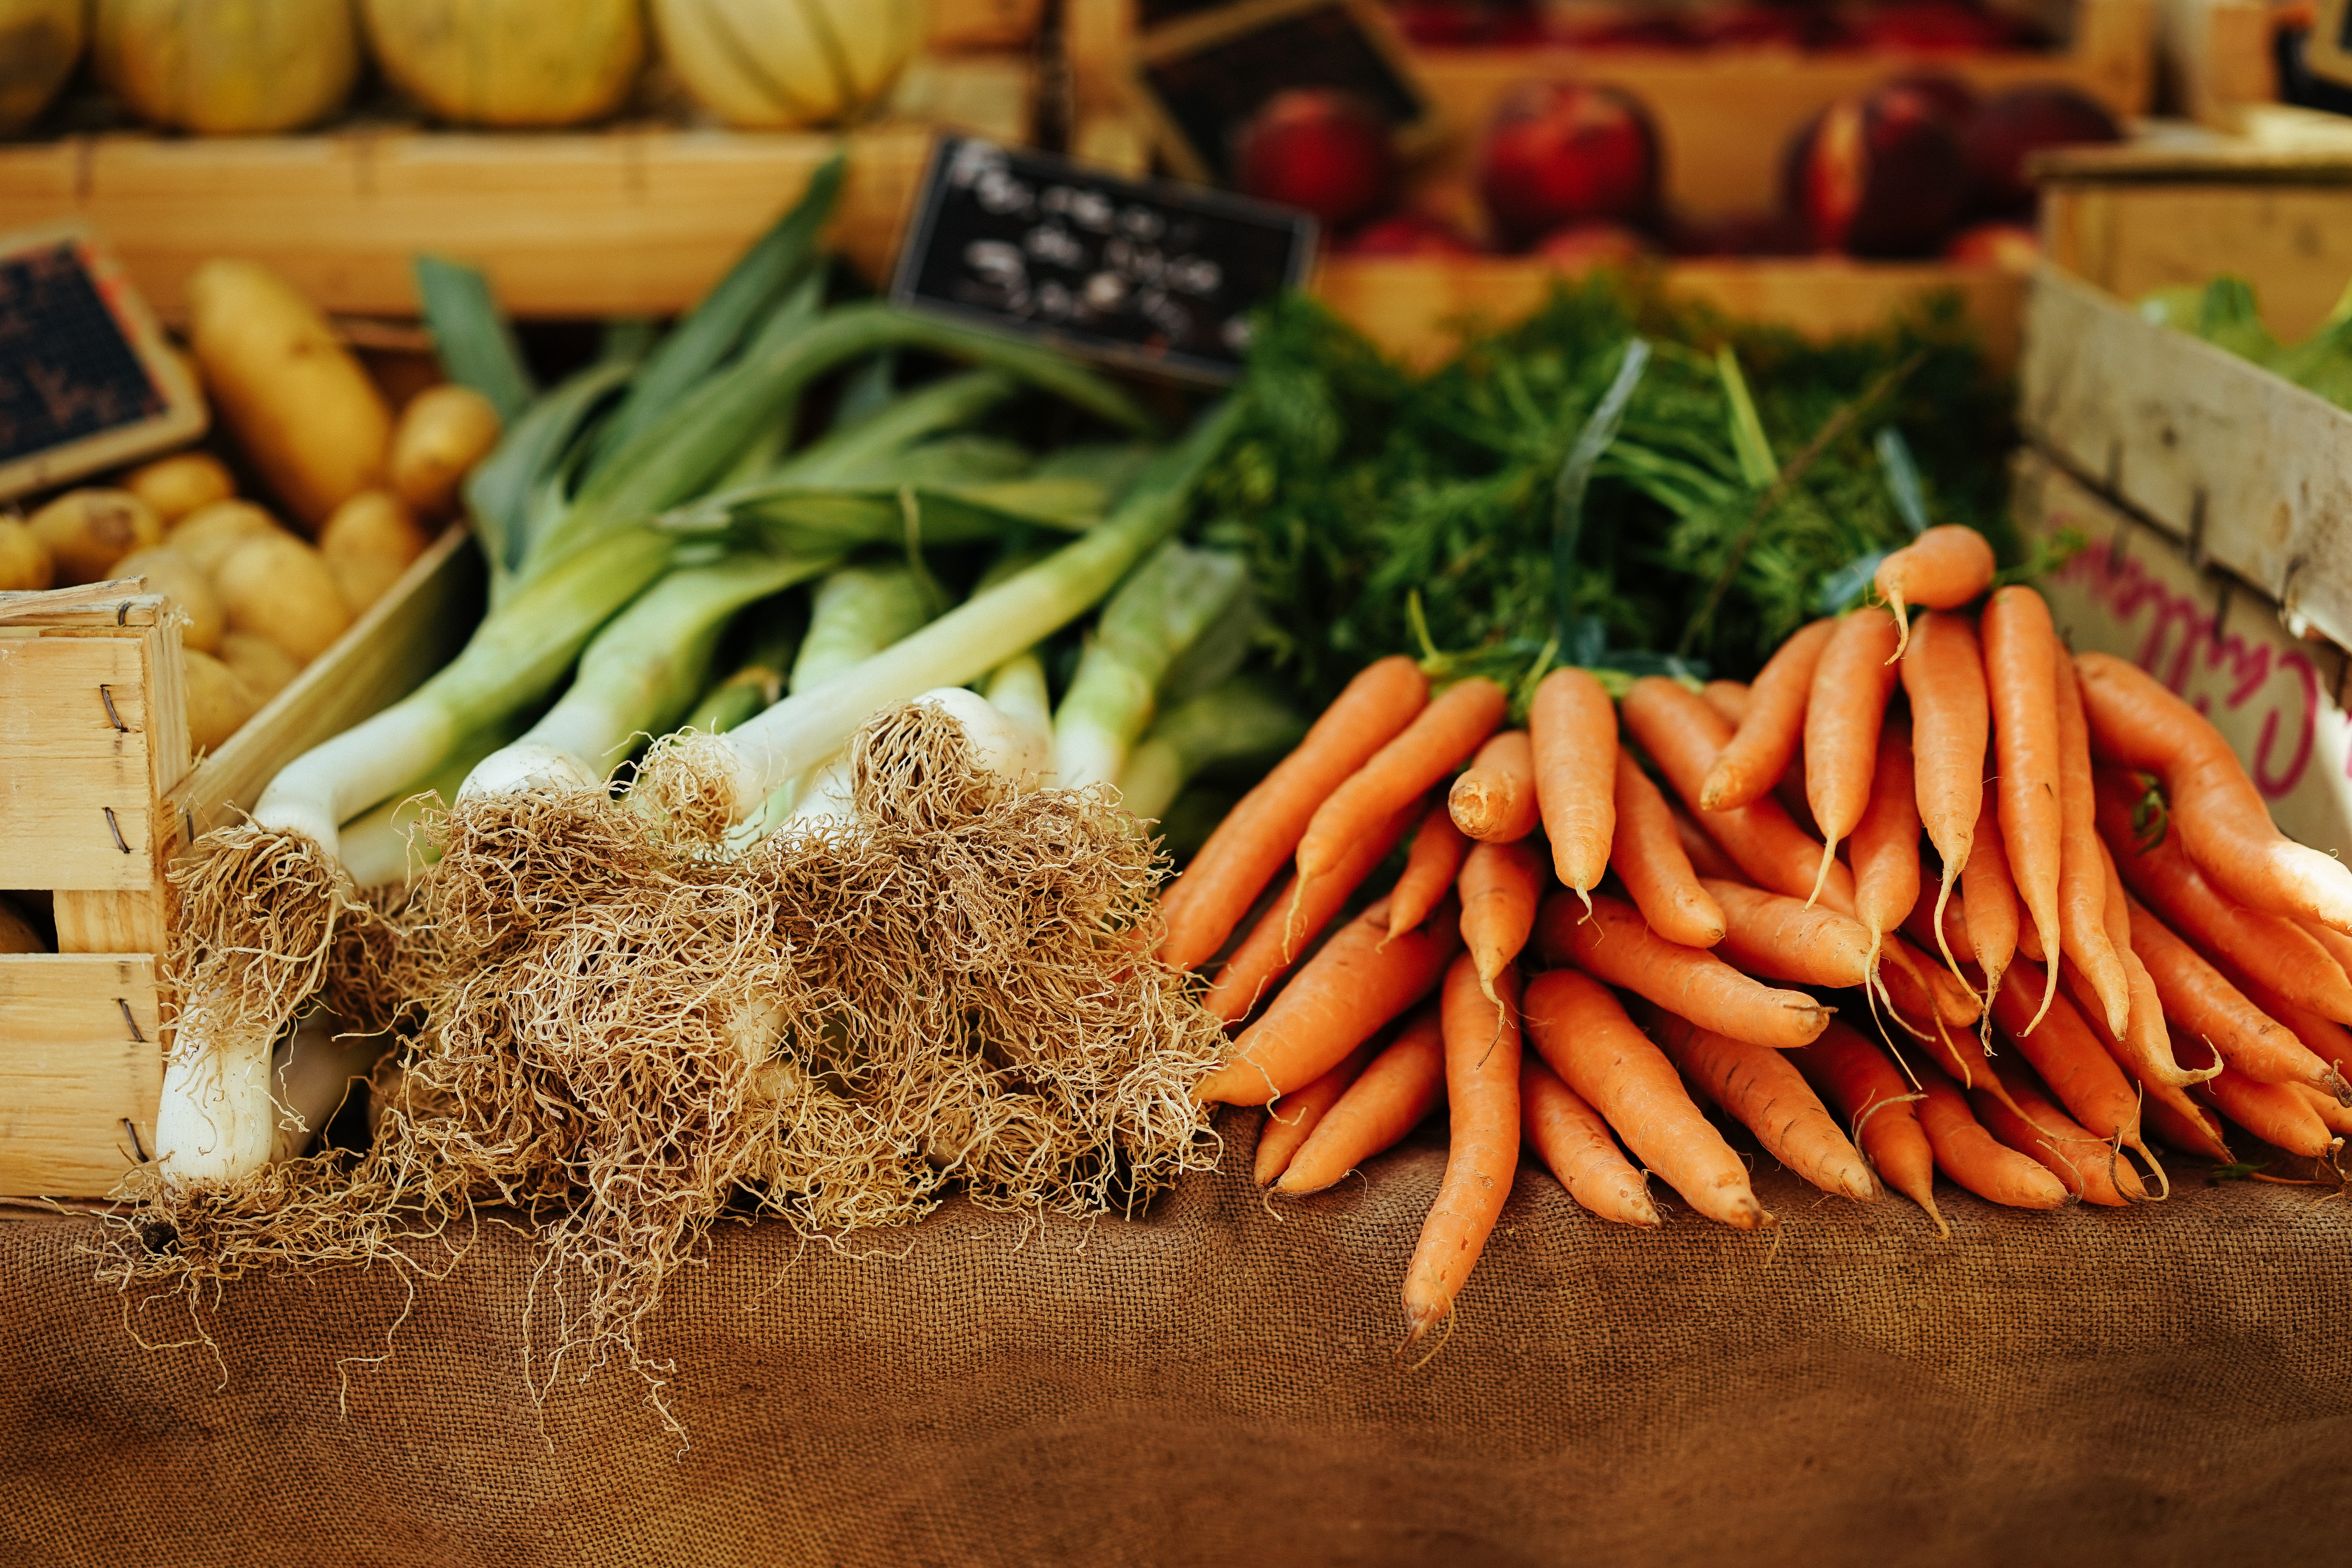 A table full of vegetables including celery and carrots at Marché aux Fleurs